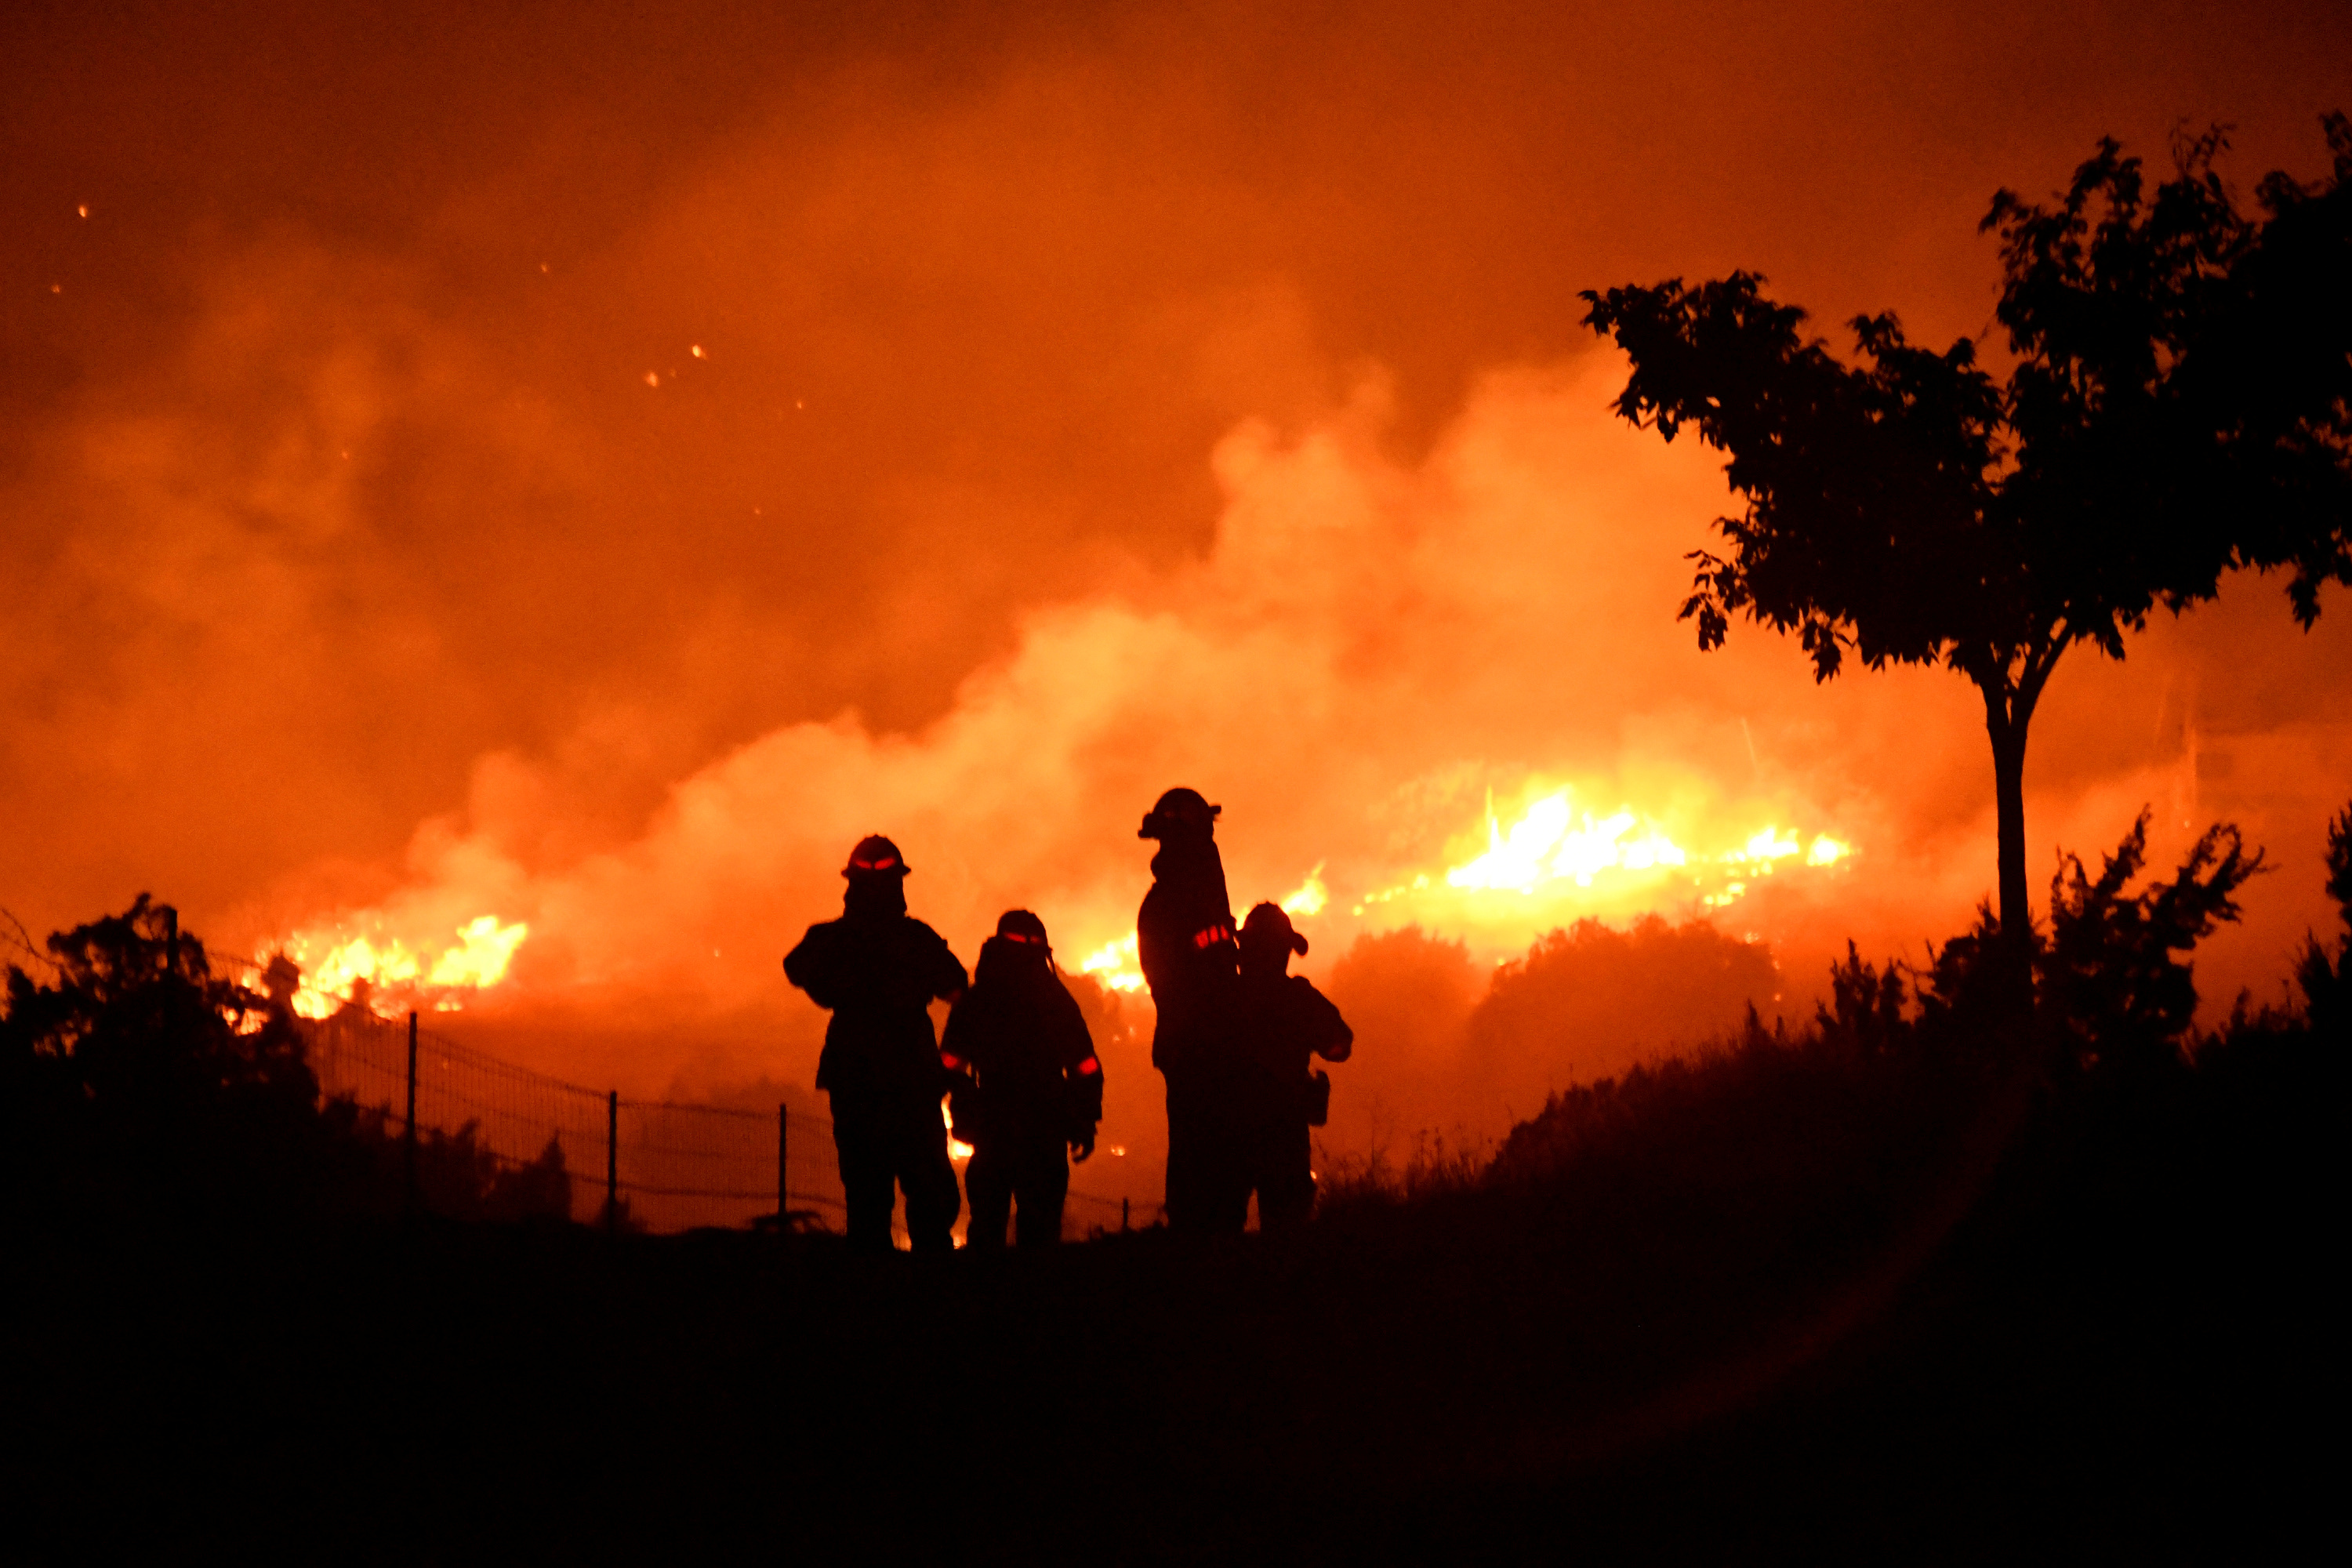 FILE PHOTO: Los Angeles County firefighters keep watch on the Bobcat Fire as it burns through the night in Juniper Hills, California, U.S. September 19, 2020.  REUTERS/Gene Blevins/File Photo